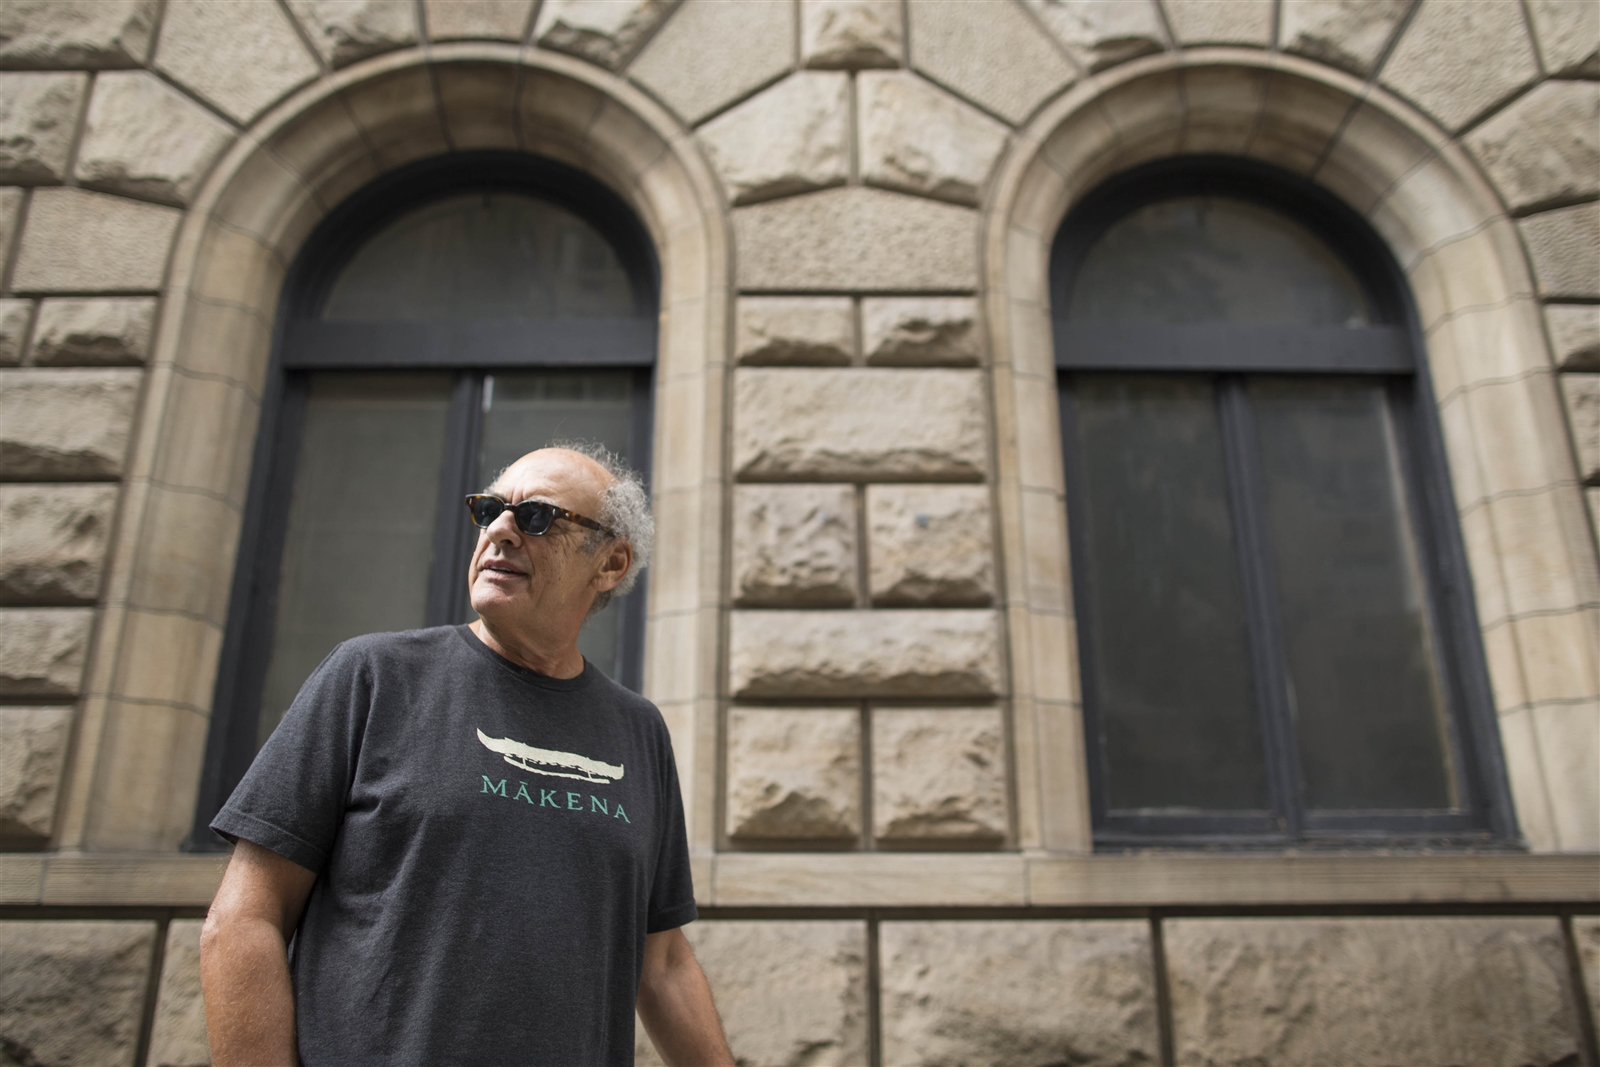 Legendary producer Shep Gordon walks along Lexington Avenue in New York City on Sept. 12. Gordon grew up in the New York City area, but now lives on a beach estate in Hawaii. Gordon doesnu2019t get back here often, but heu2019s in New York for a couple of weeks promoting his autobiography, u201cThey Call Me Supermensch.""